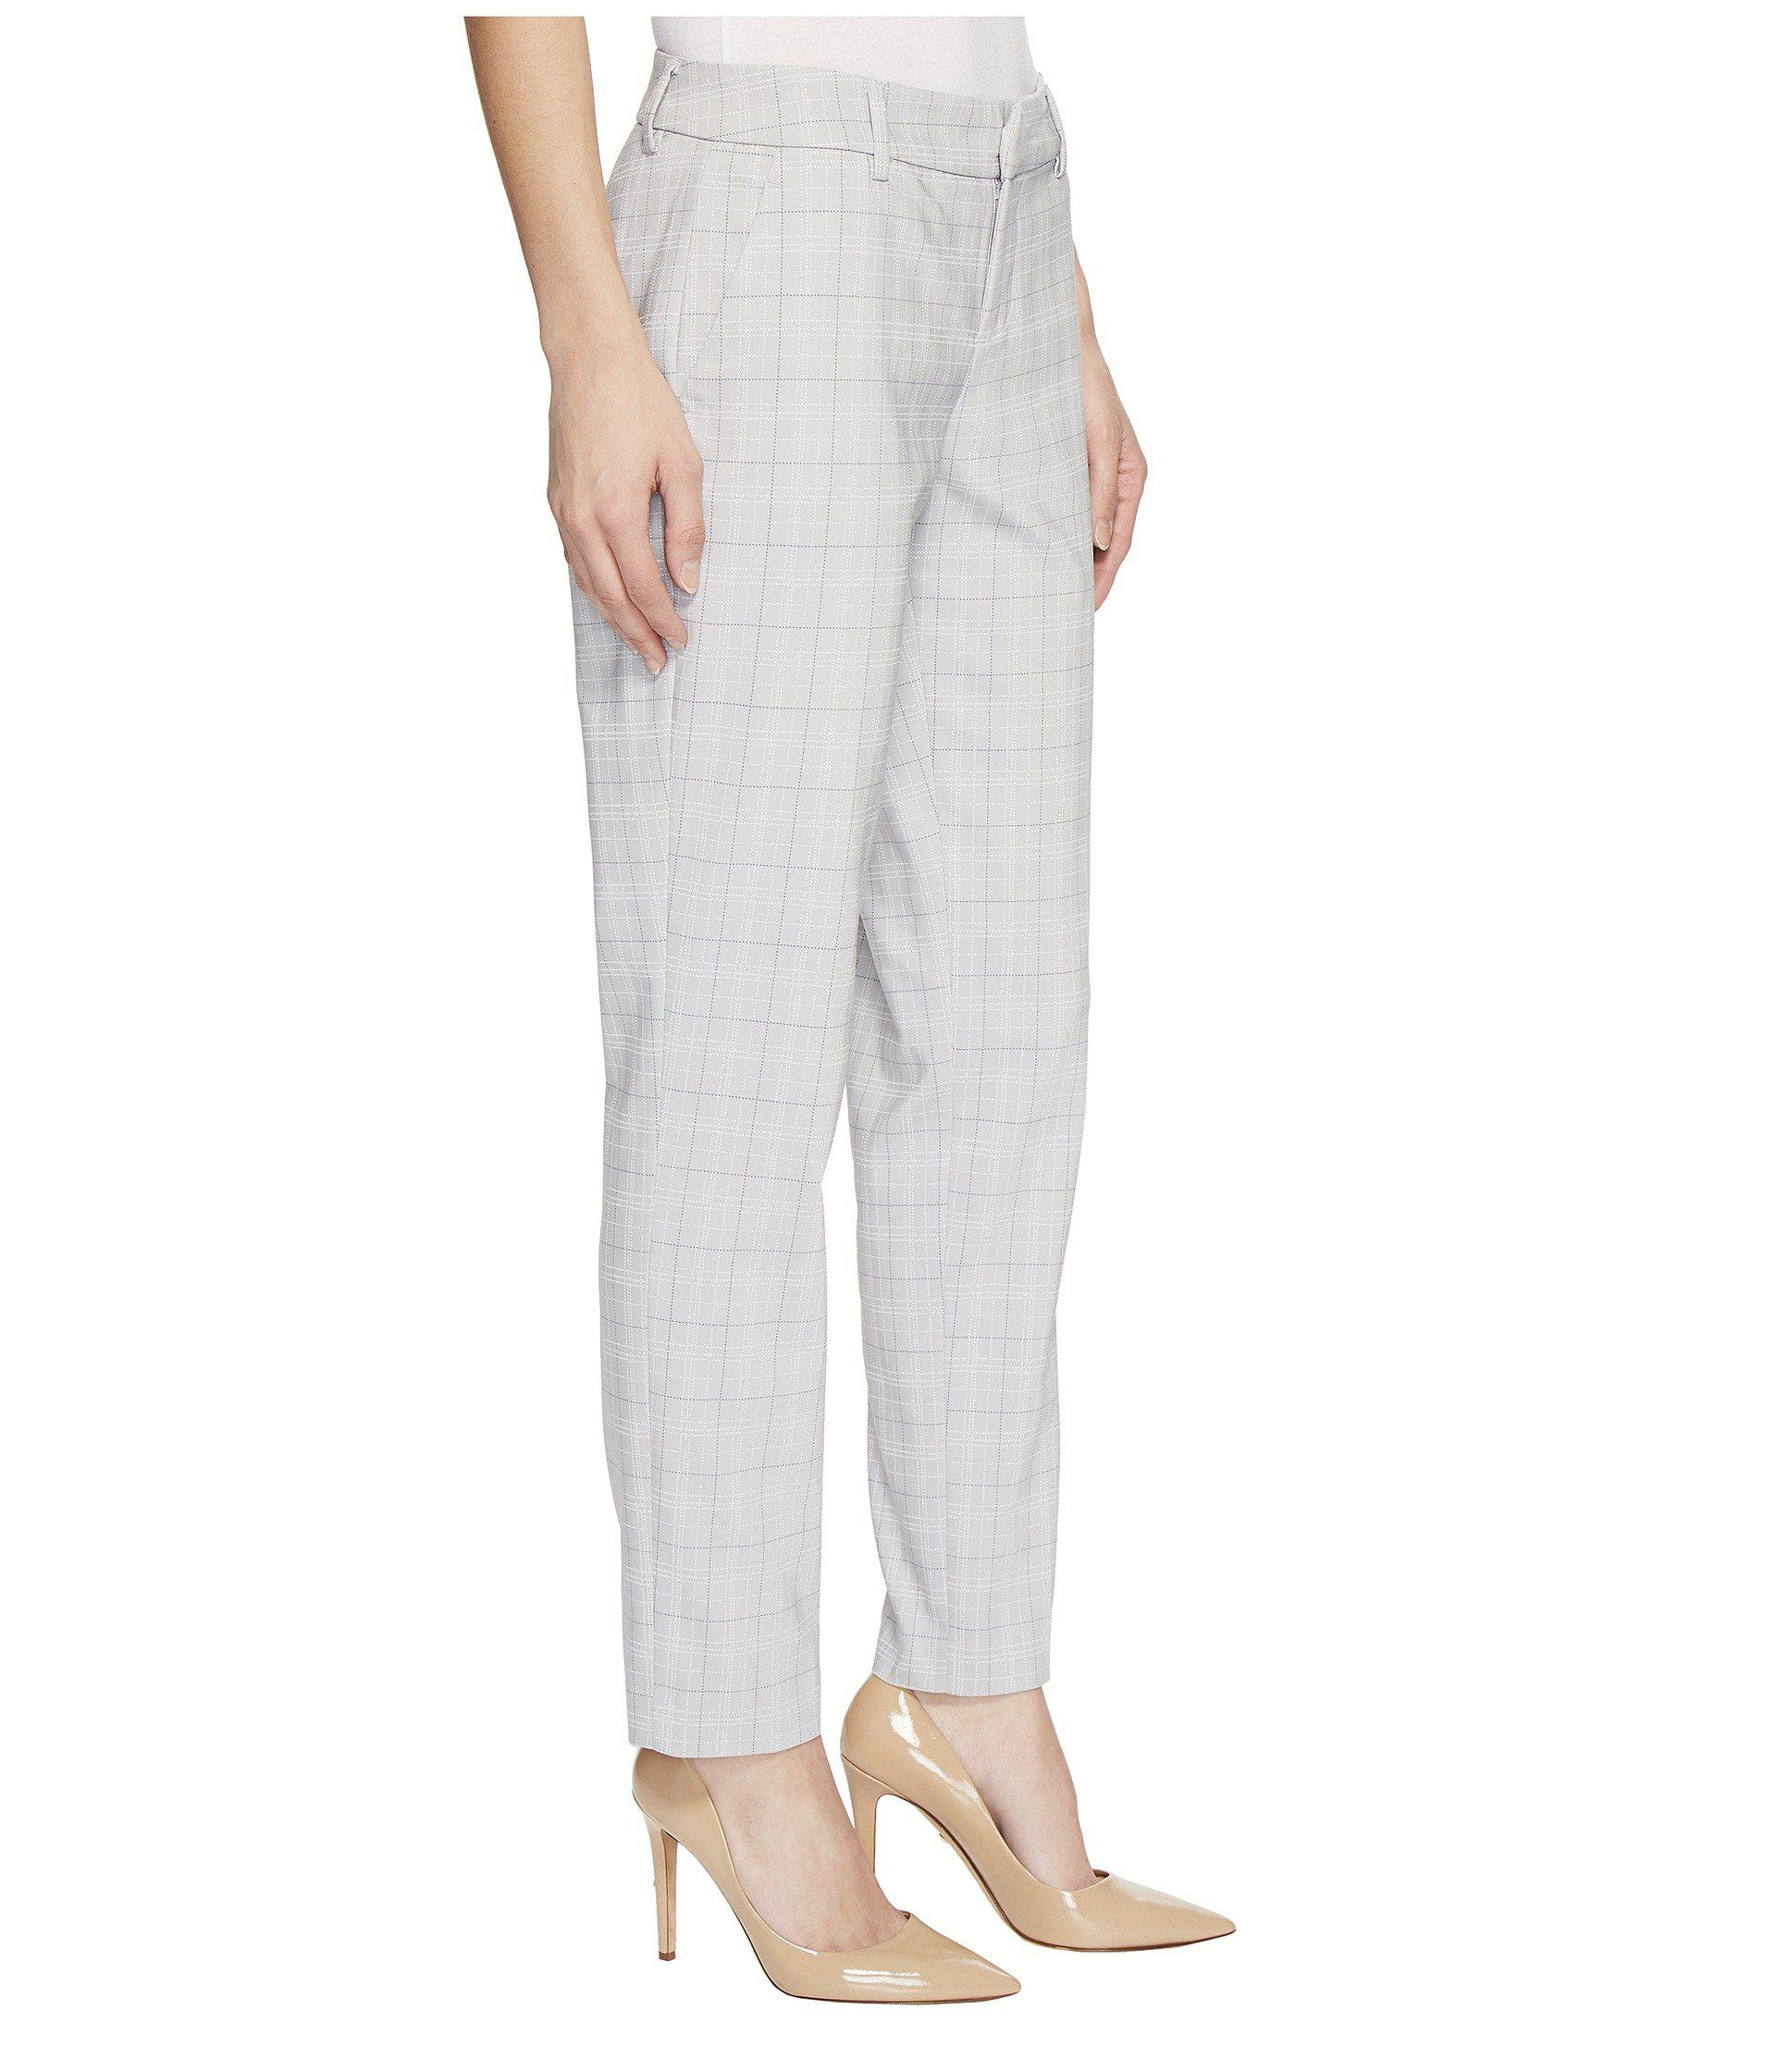 available straight comforter women and pants regular comfort in the woven classic jeans lengths walmart s stretch petite com ip leg lee riders by long waist